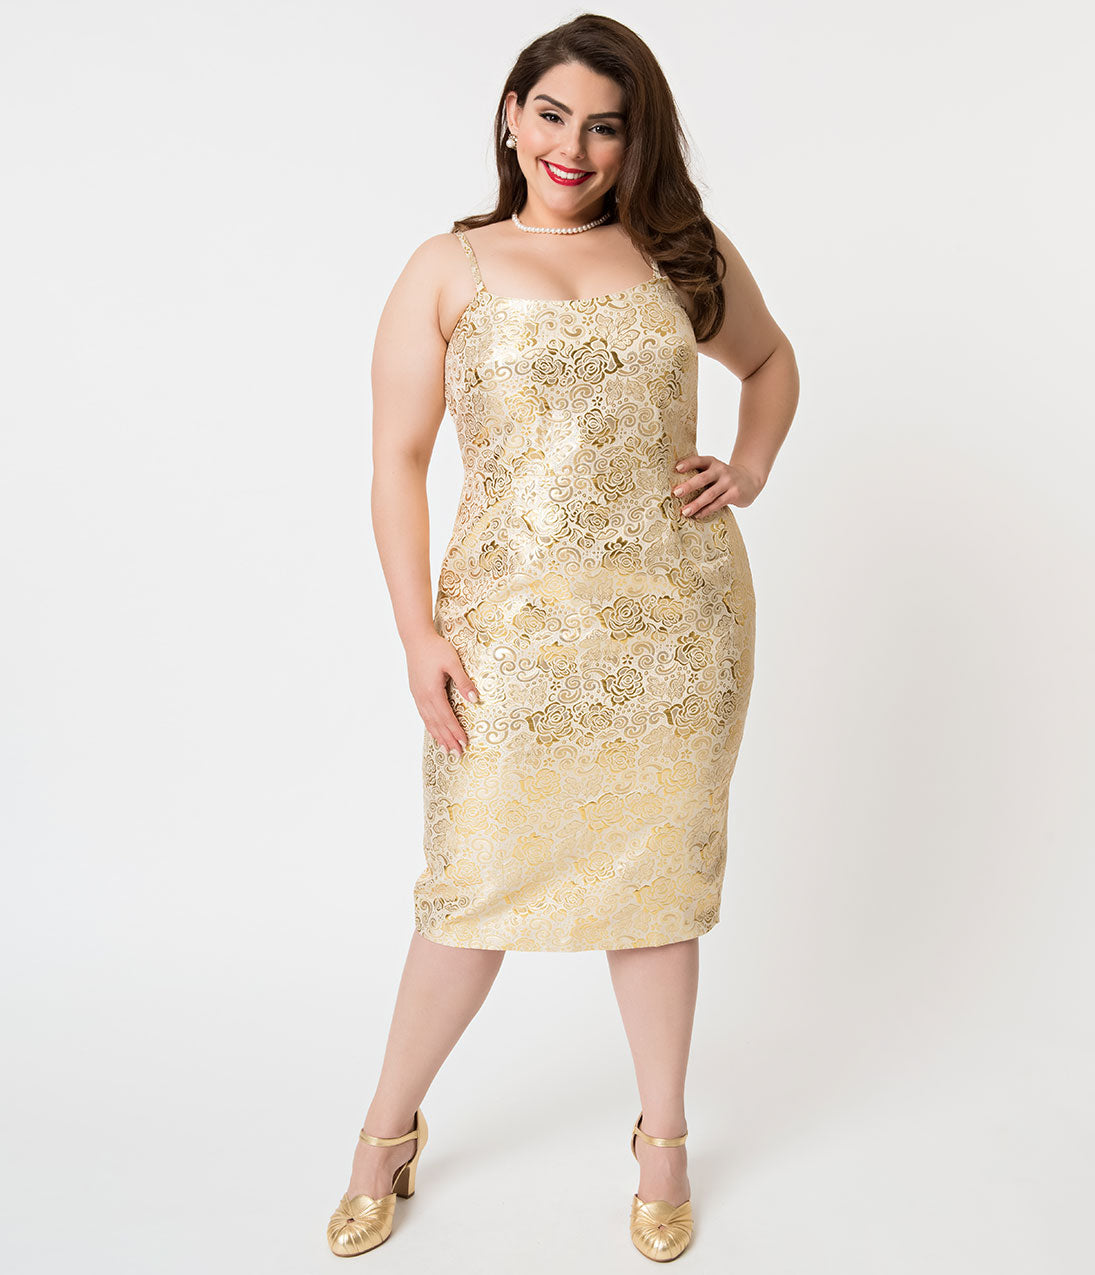 1950s Plus Size Dresses, Swing Dresses Barbie X Unique Vintage Plus Size Golden Girl Brocade Sheath Dress $118.00 AT vintagedancer.com